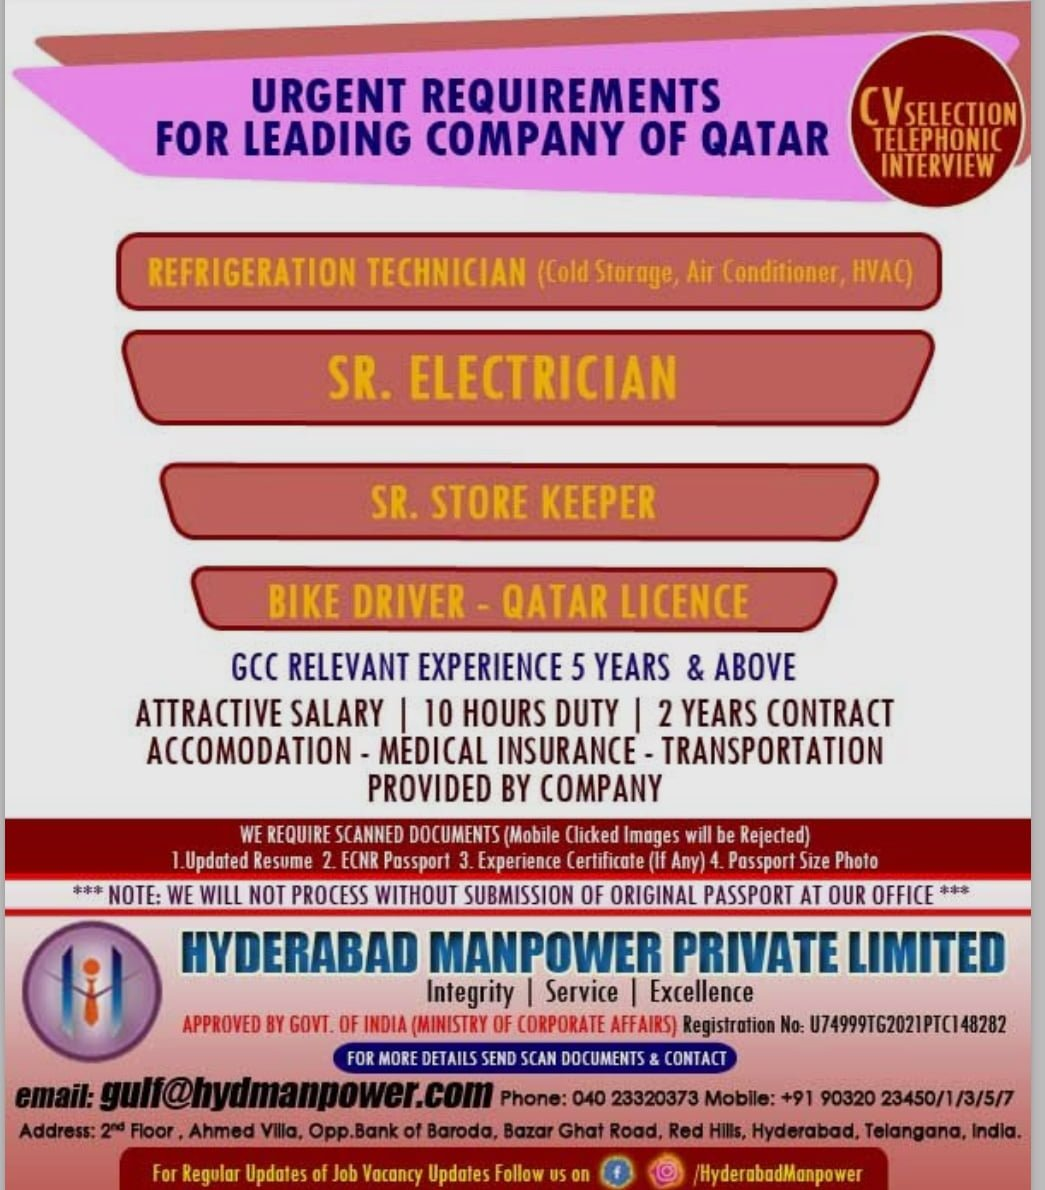 URGENT REQUIREMENTS FOR COMPANY OF QATAR